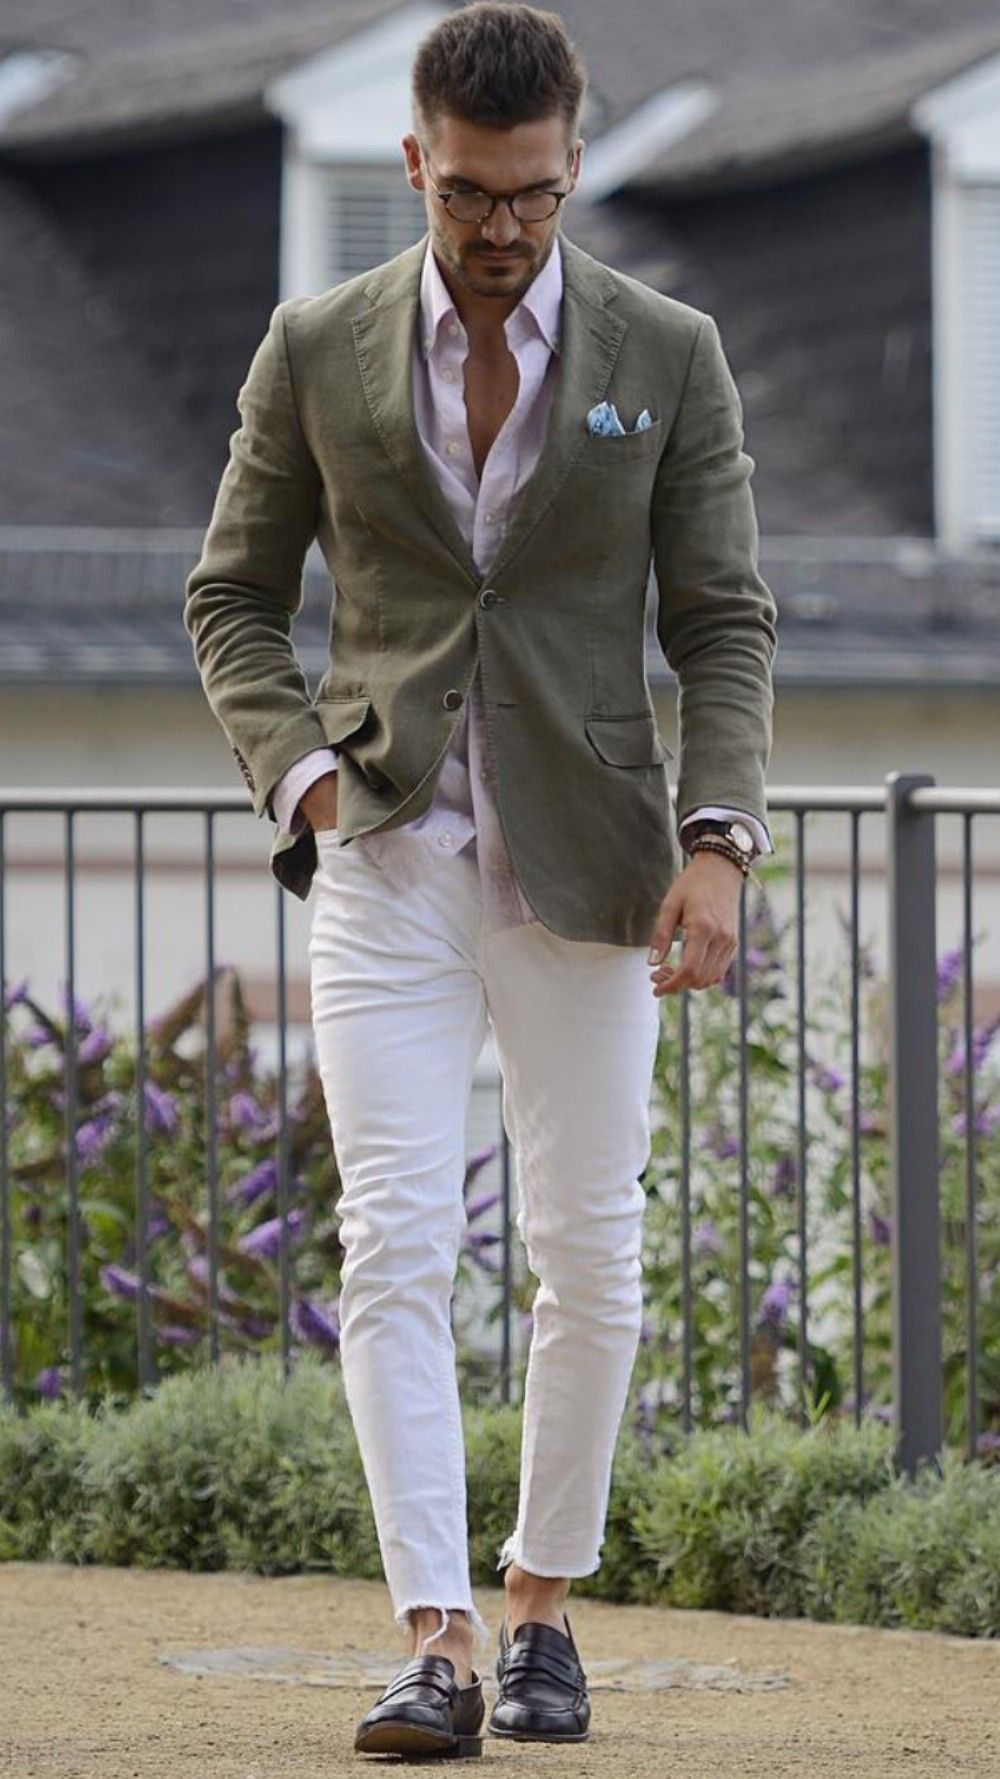 Pin By Glitterous On Men S Fashion Mens Fashion Blog Jeans Outfit